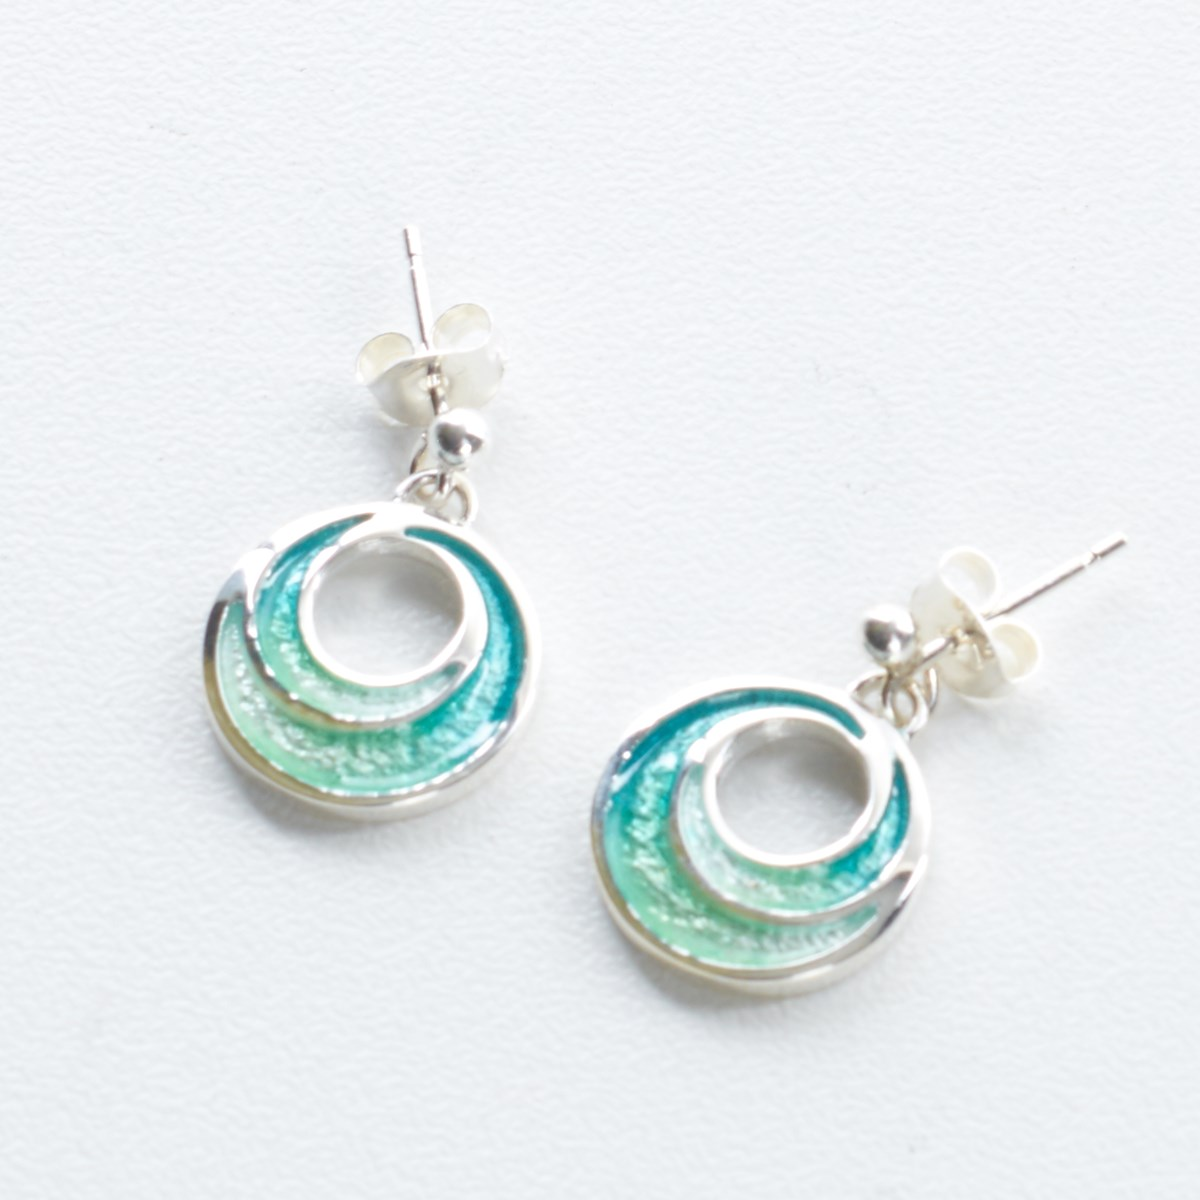 1a9e8c659 Sterling Silver New Dawn Earrings, Tundra by Ortak - The Kilt Store